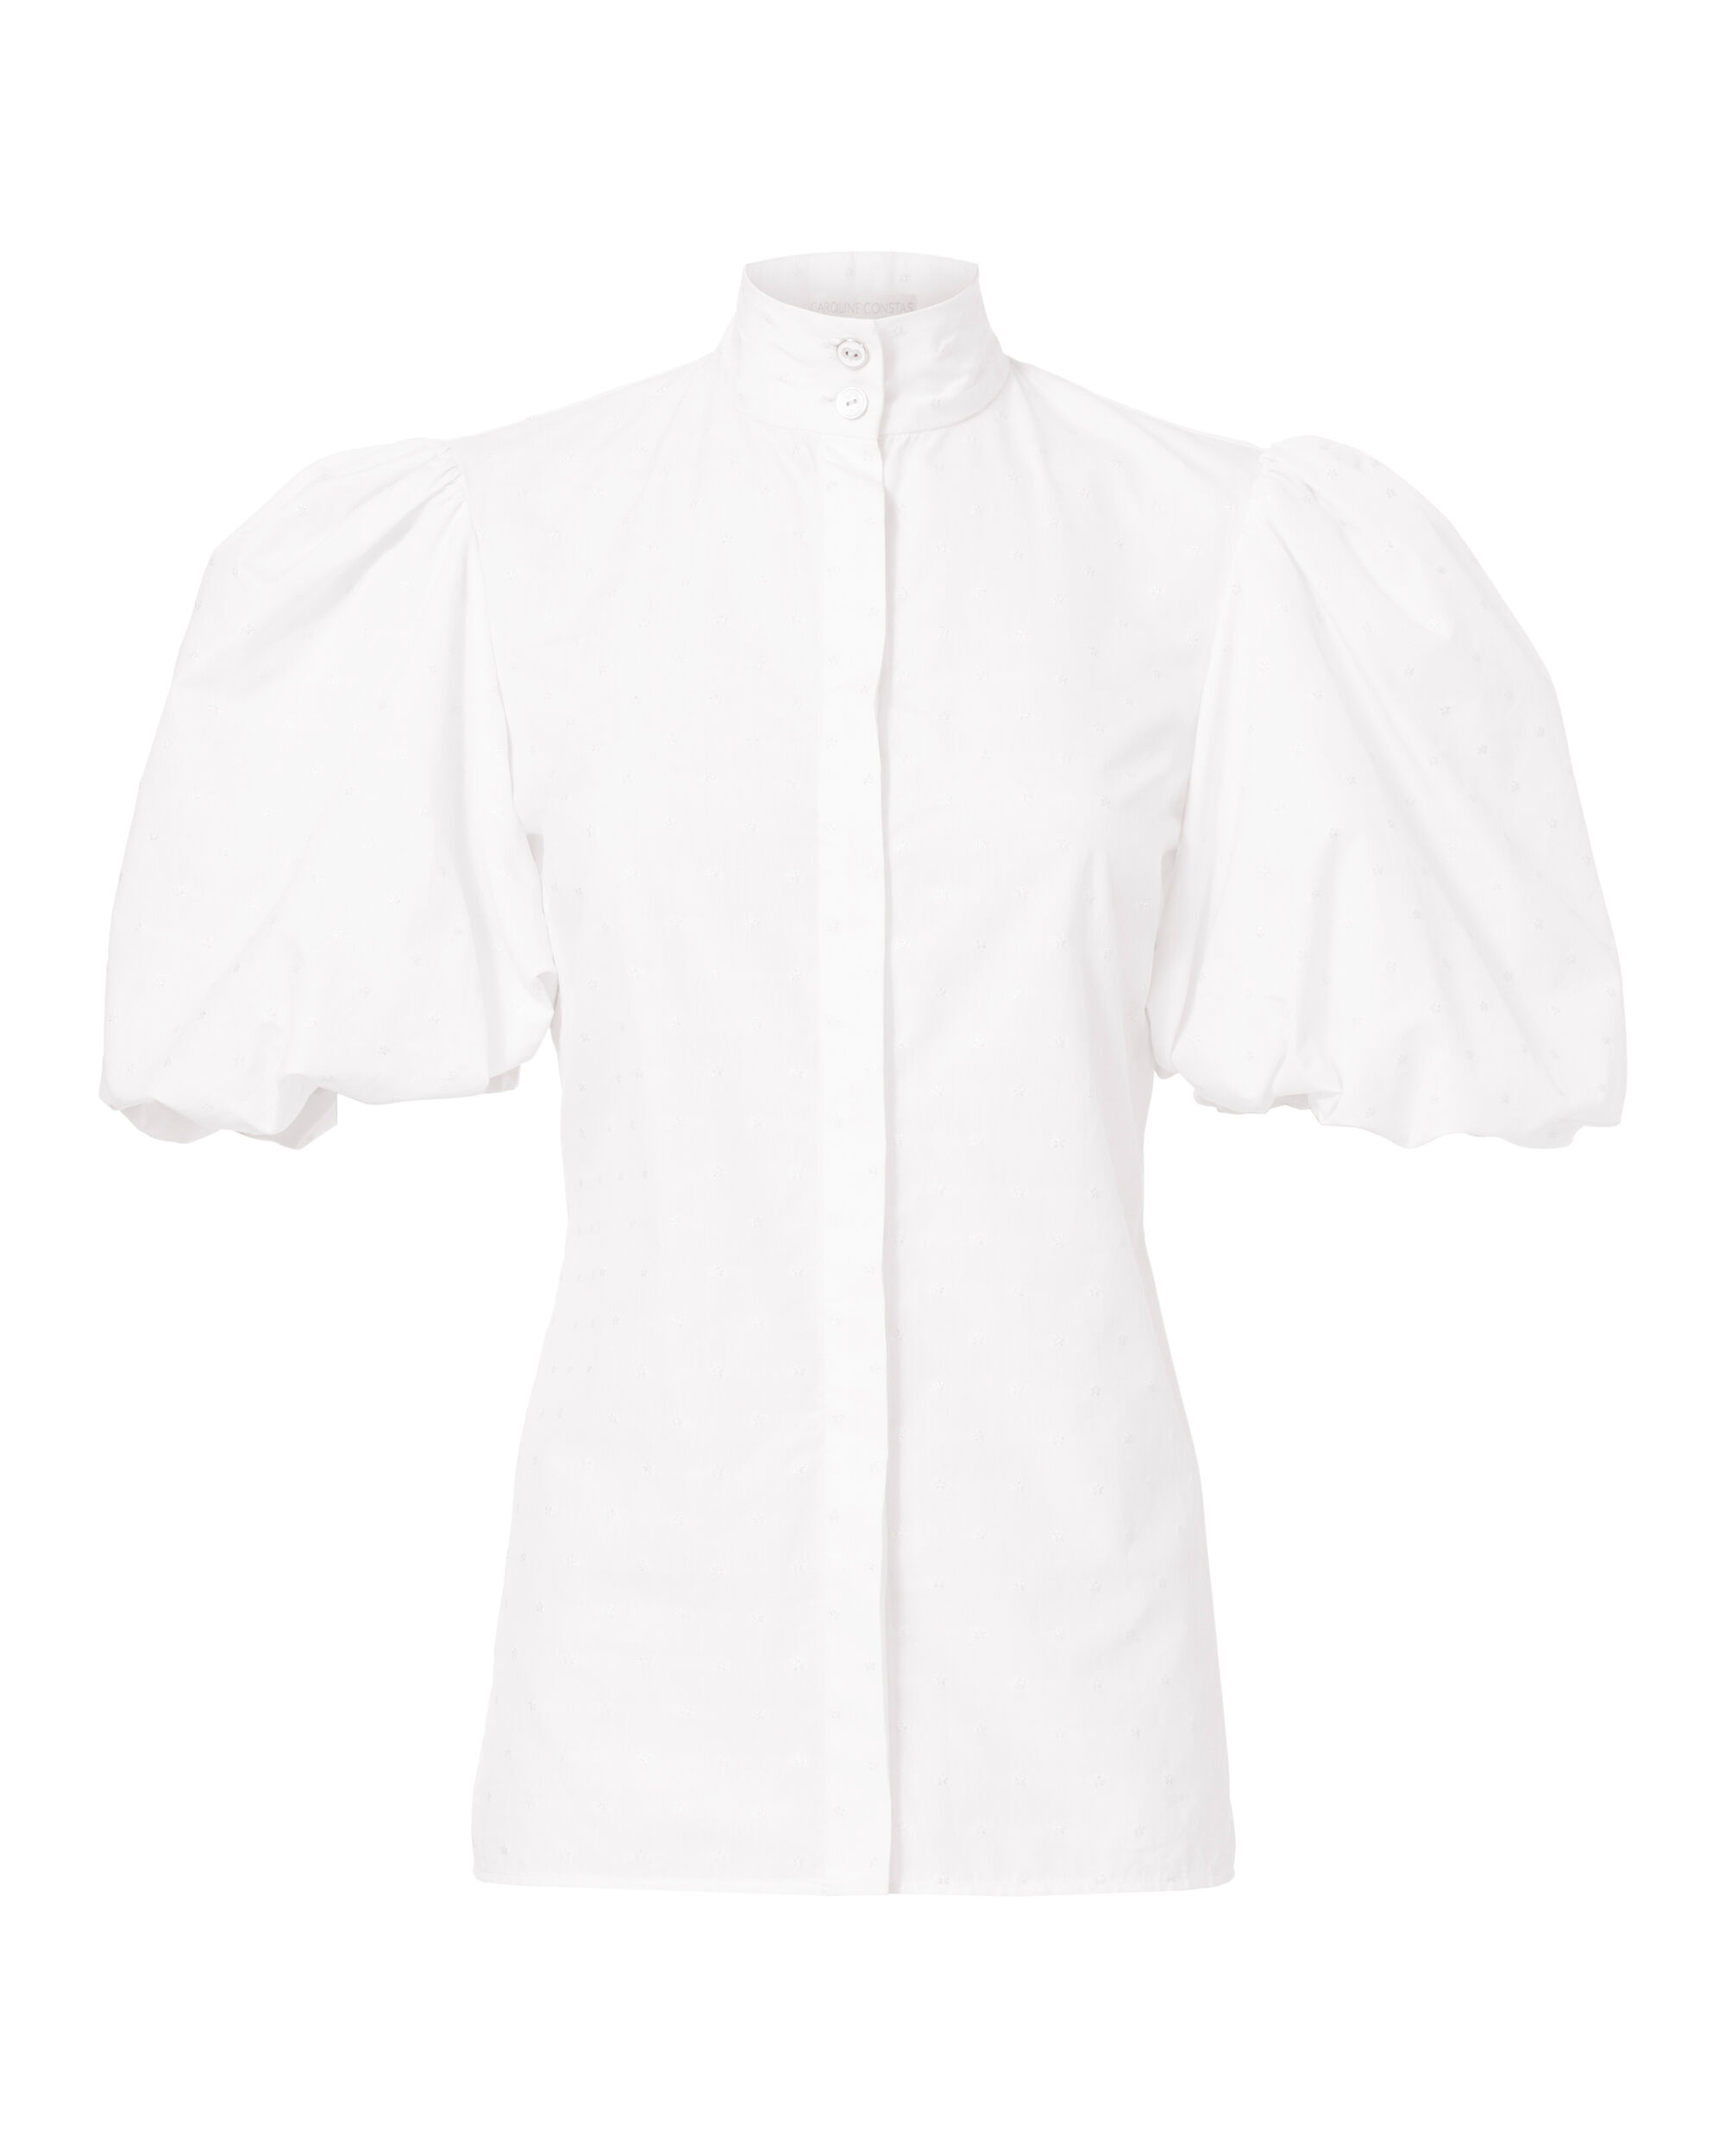 Daisy Puff Sleeve Top, WHITE, hi-res